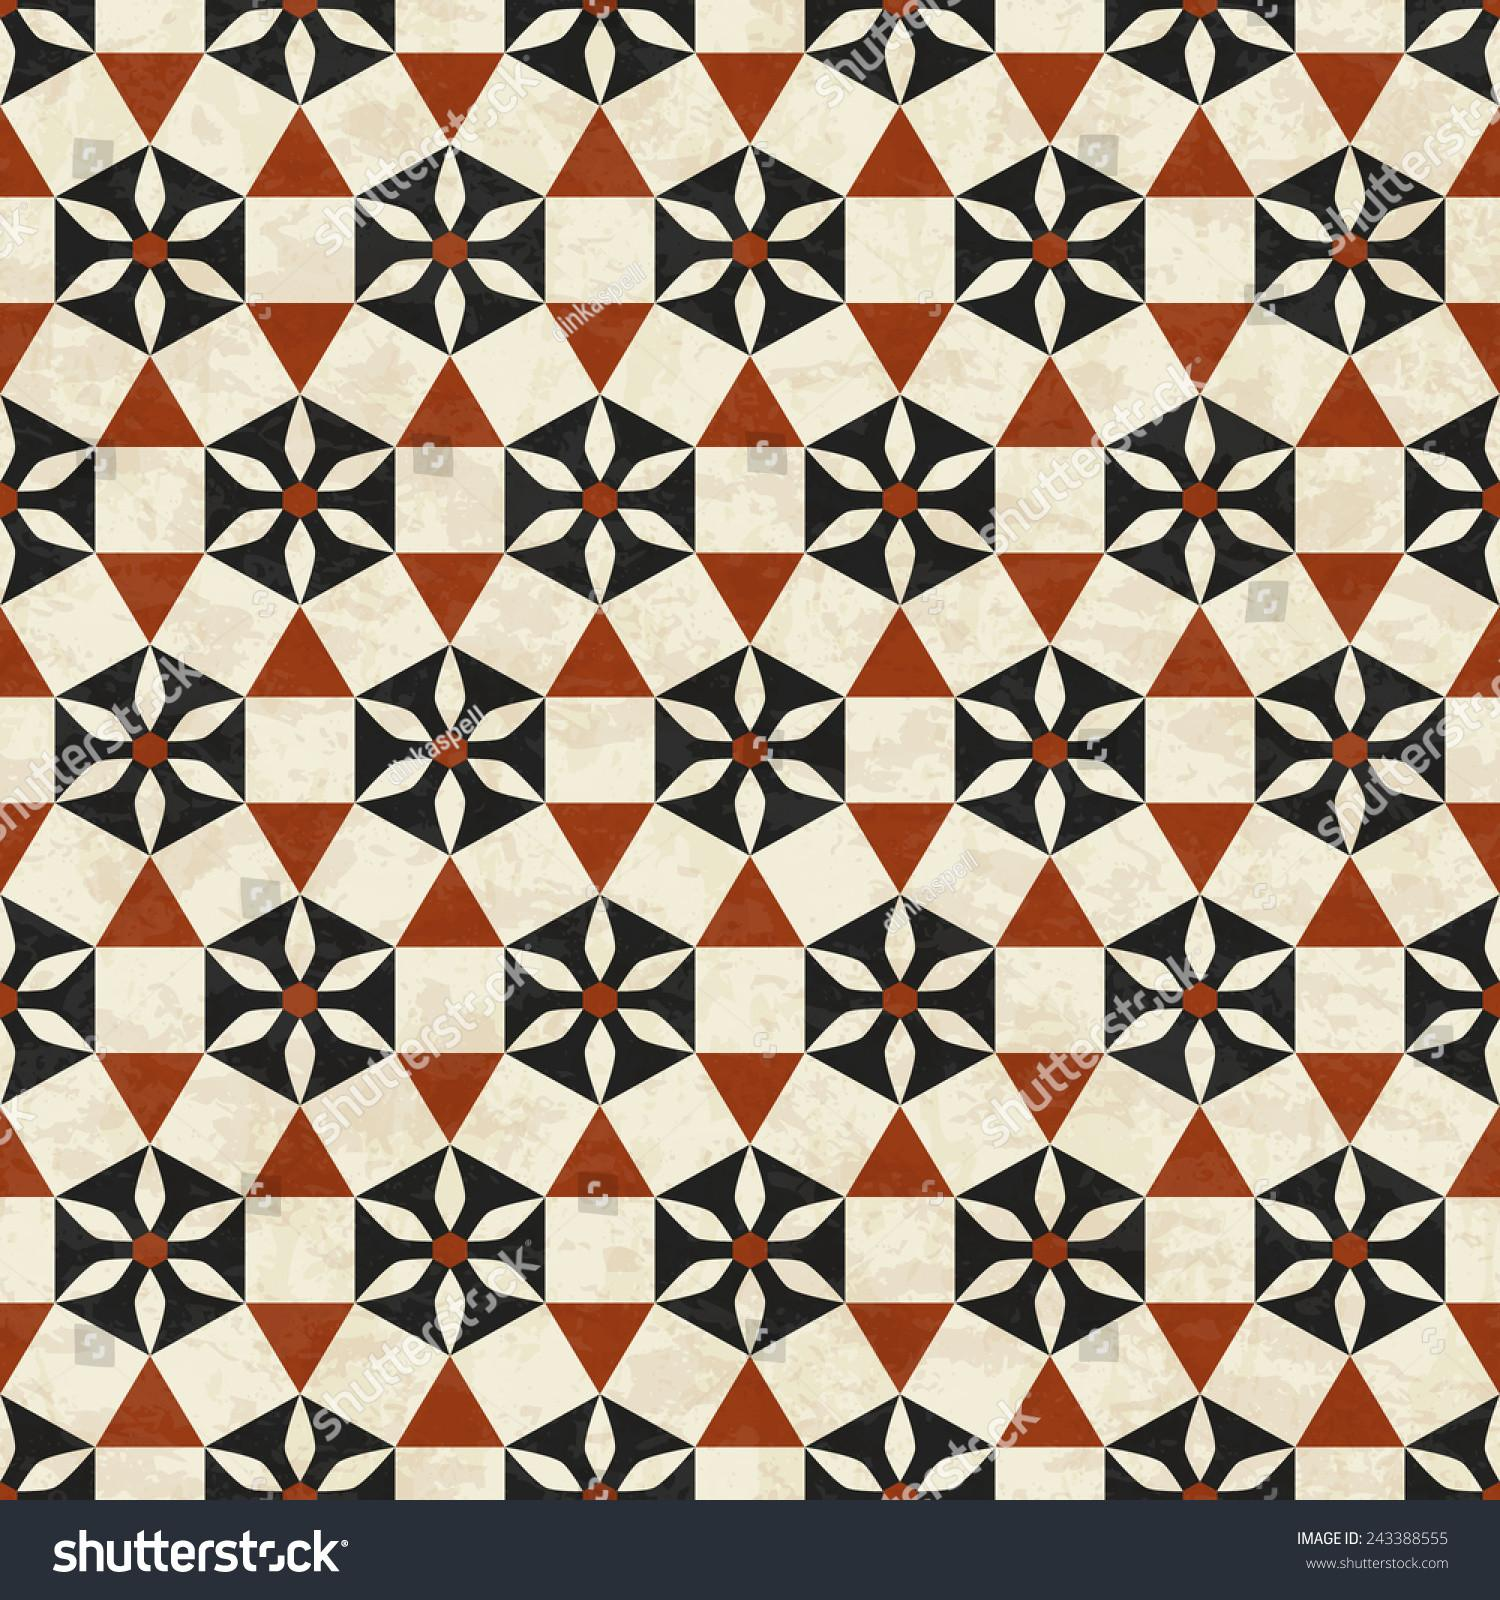 Antique Marbled Floor Tiles Abstract Geometric Stock